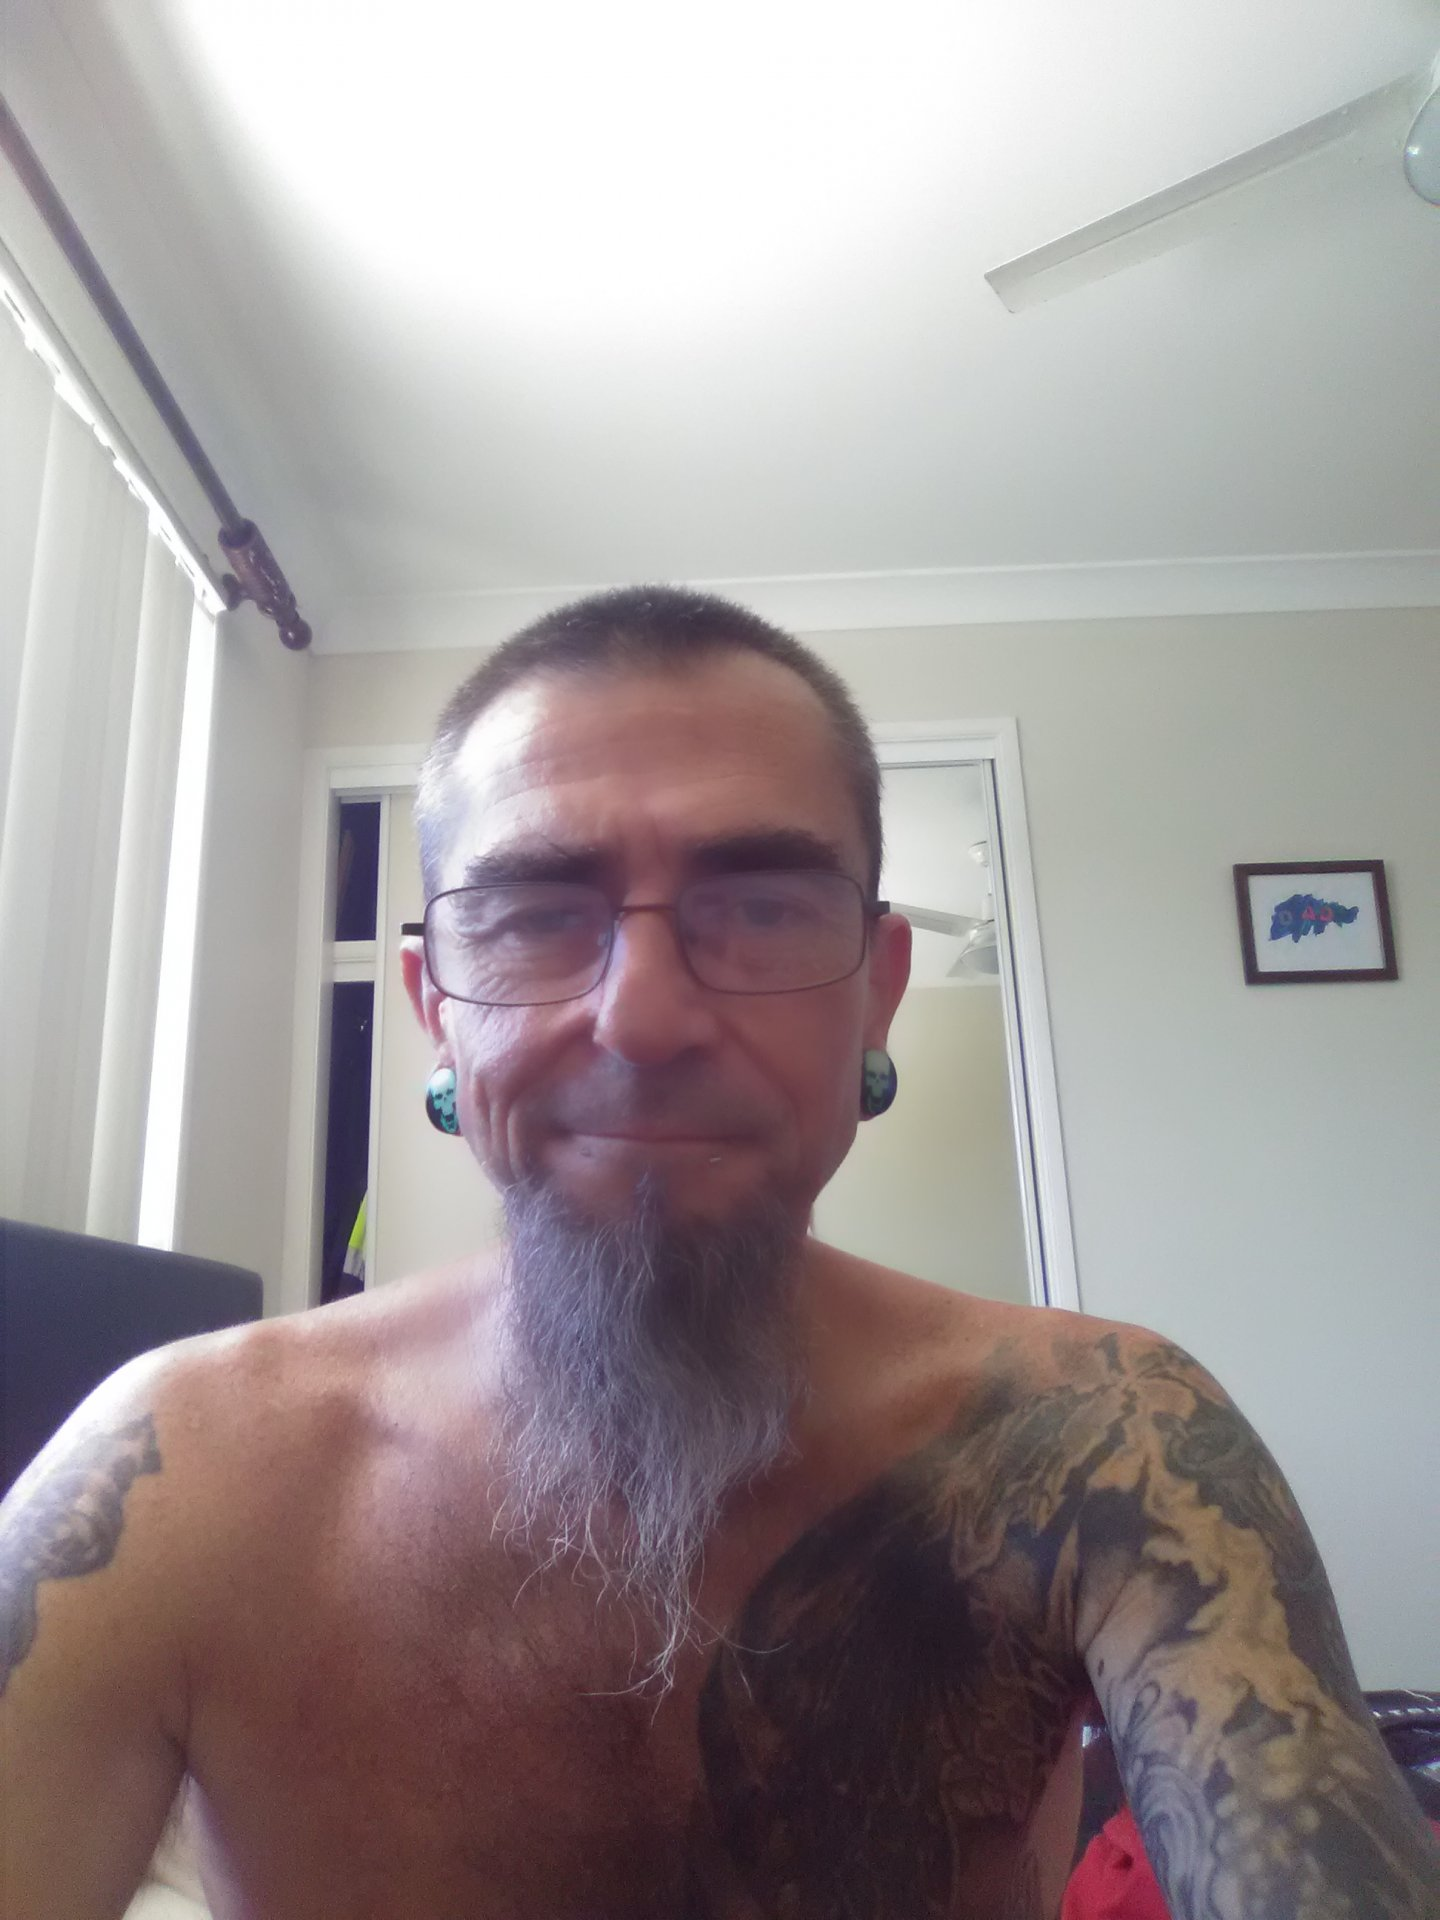 Scotty69 from Queensland,Australia